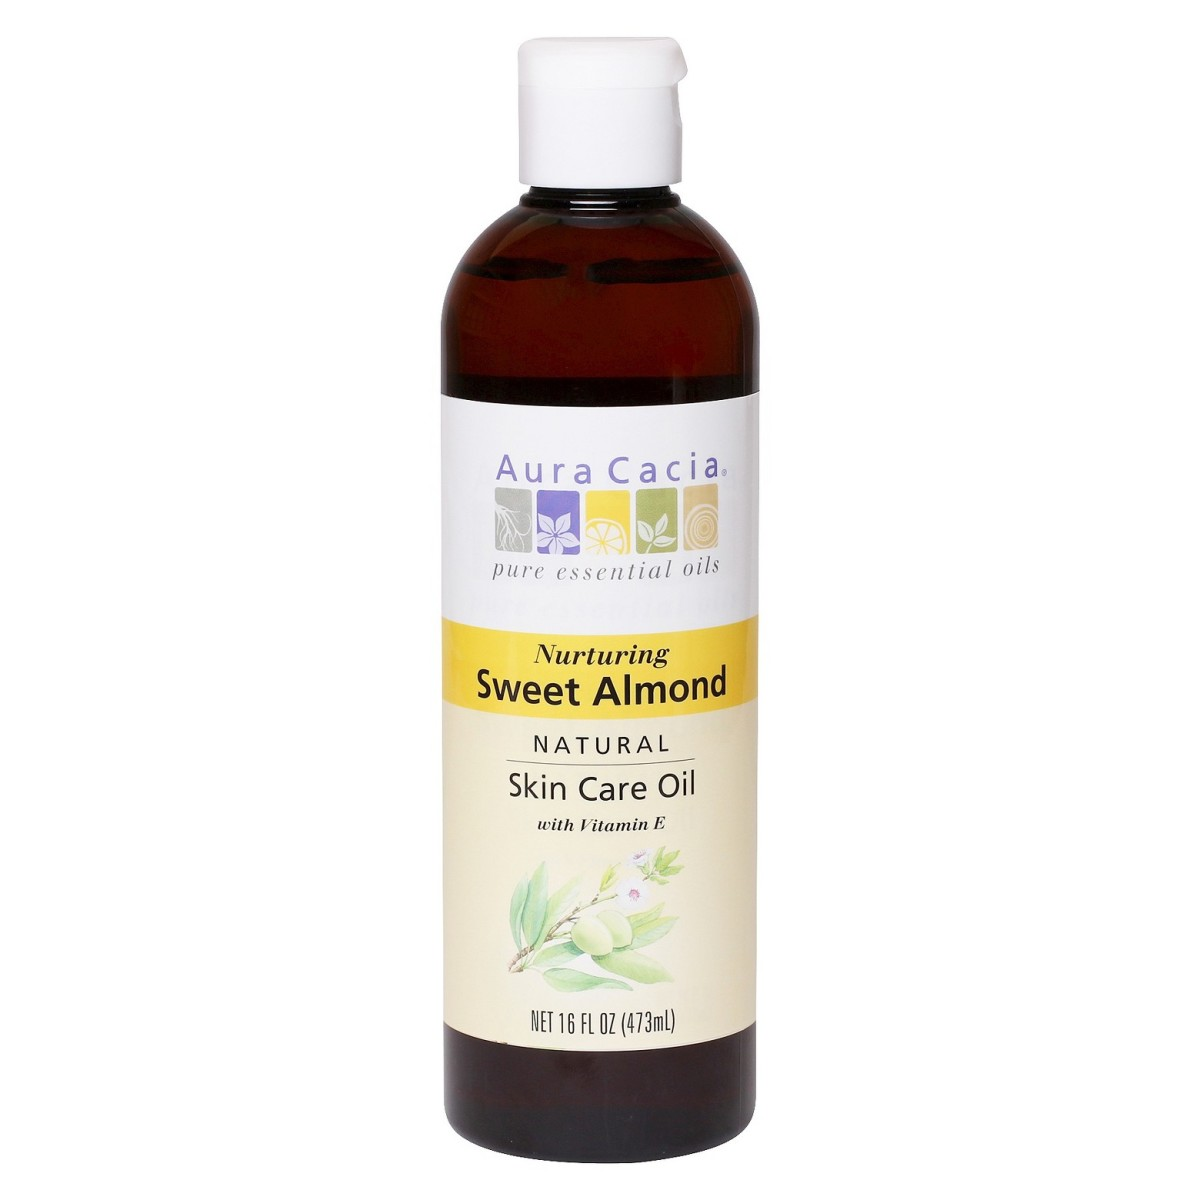 Aura Cacia Sweet Almond Natural Skin Care Oil